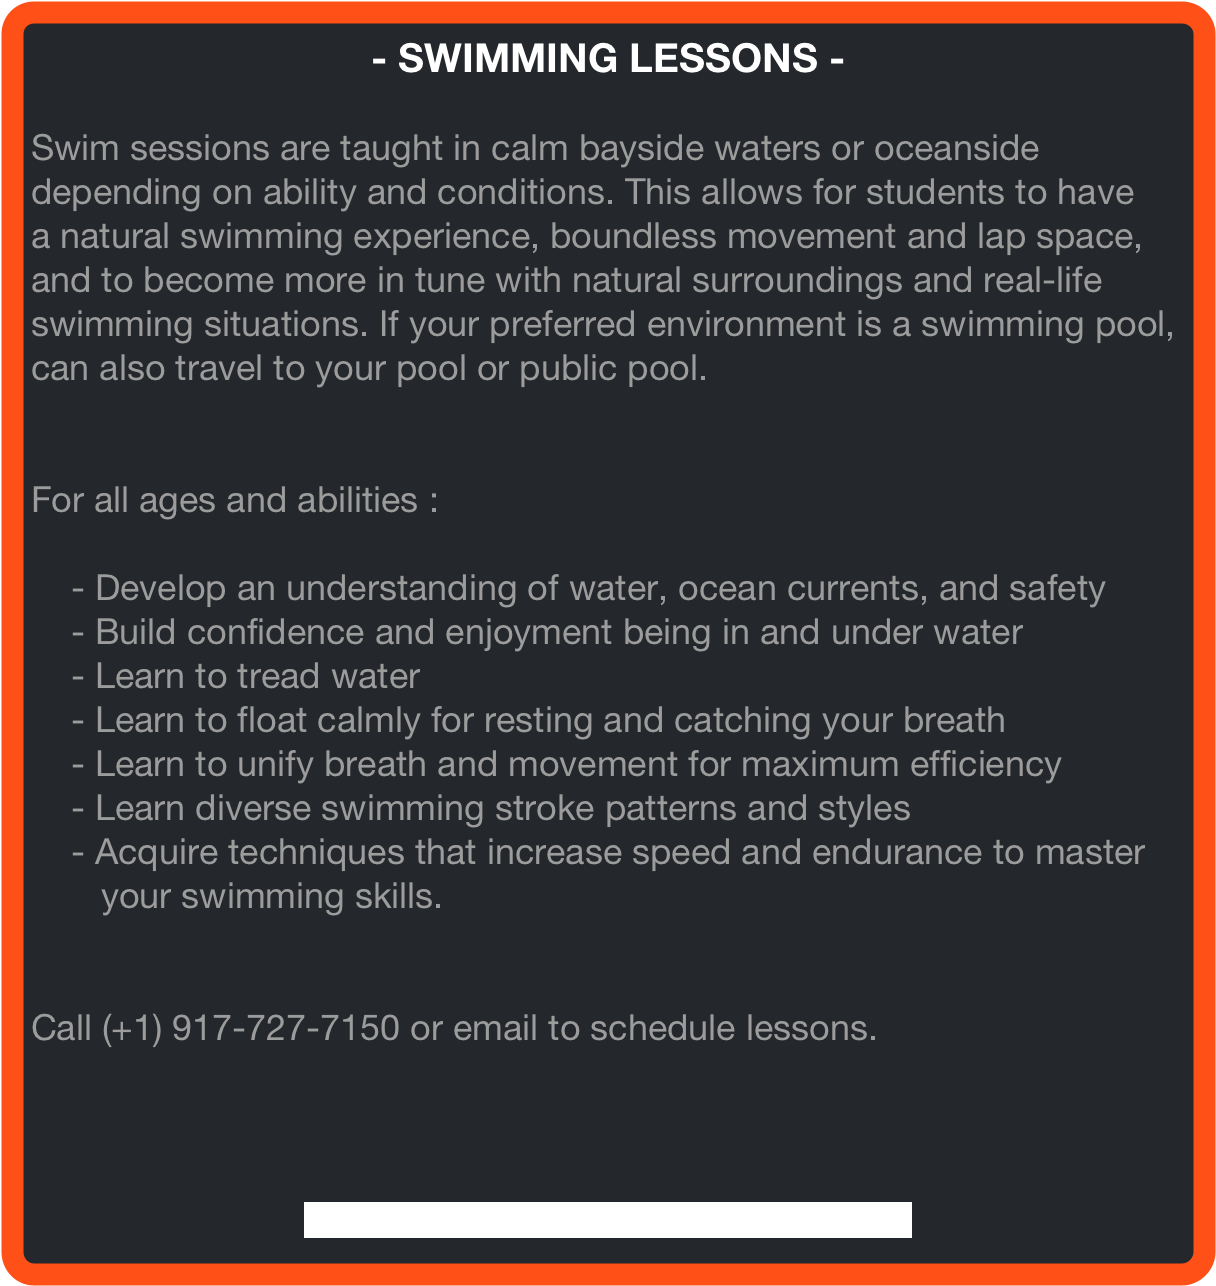 - SWIMMING LESSONS -